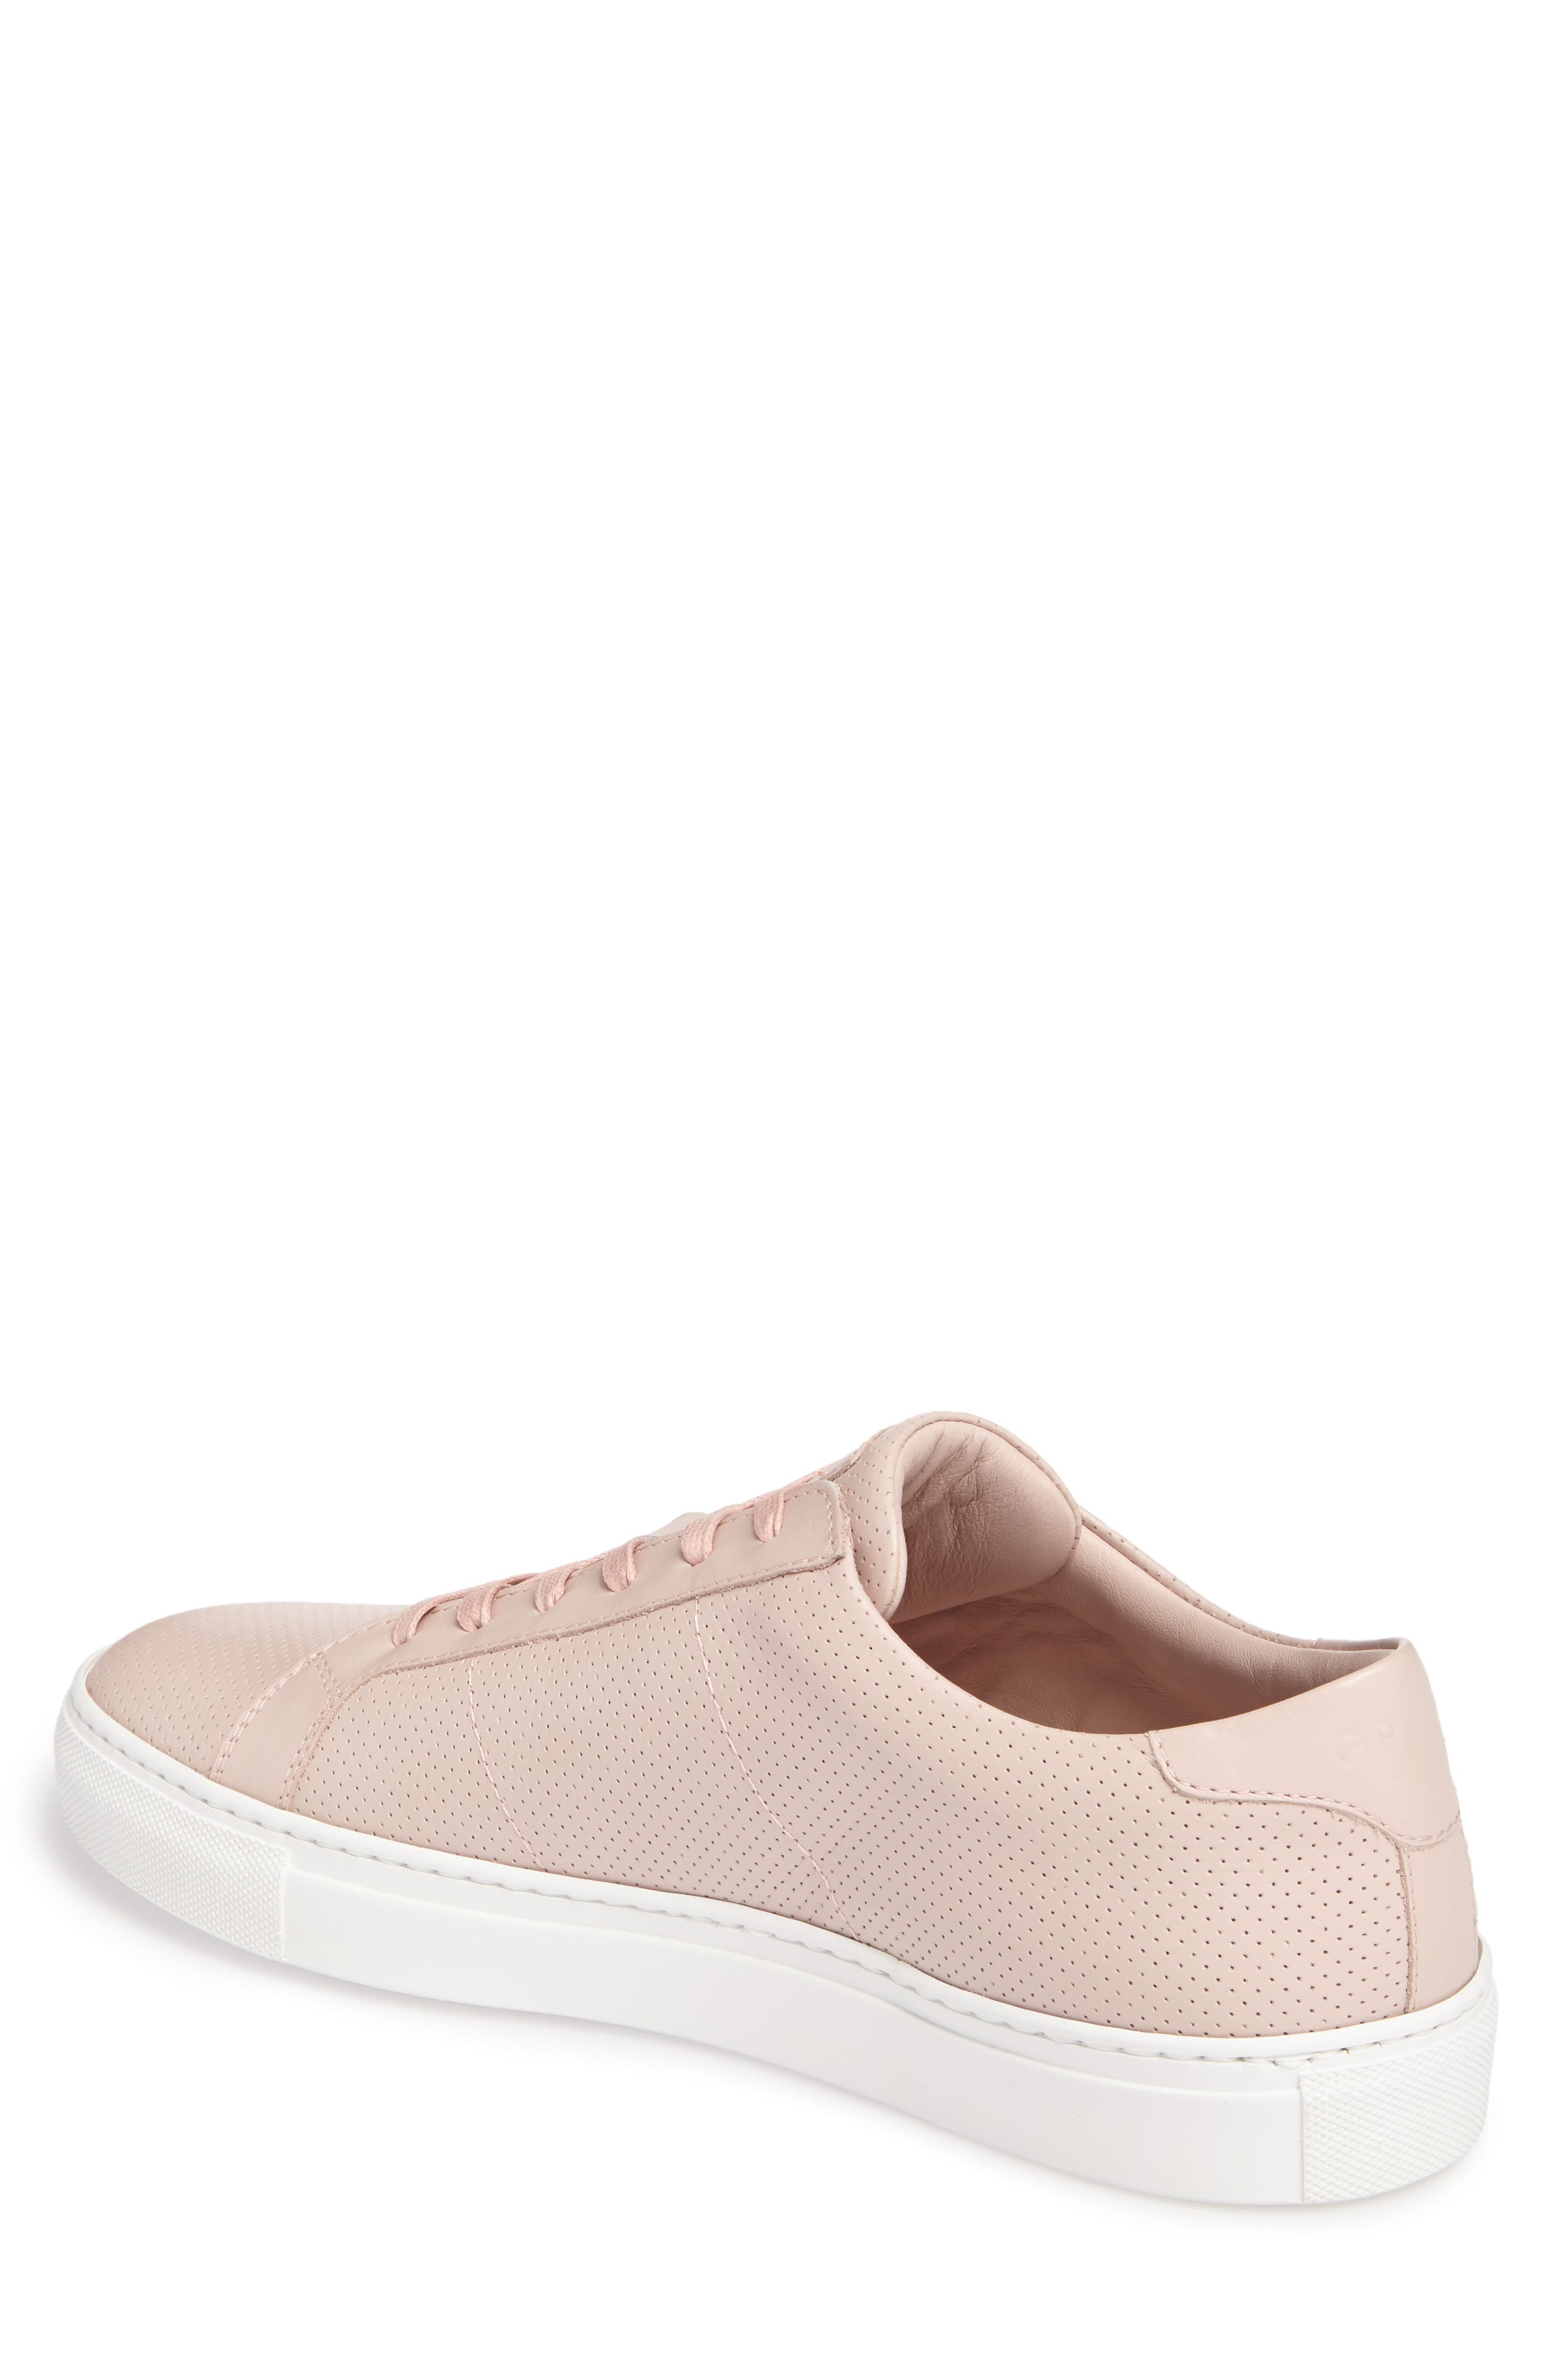 Royale Perforated Low Top Sneaker,                             Alternate thumbnail 2, color,                             BLUSH PERFORATED LEATHER